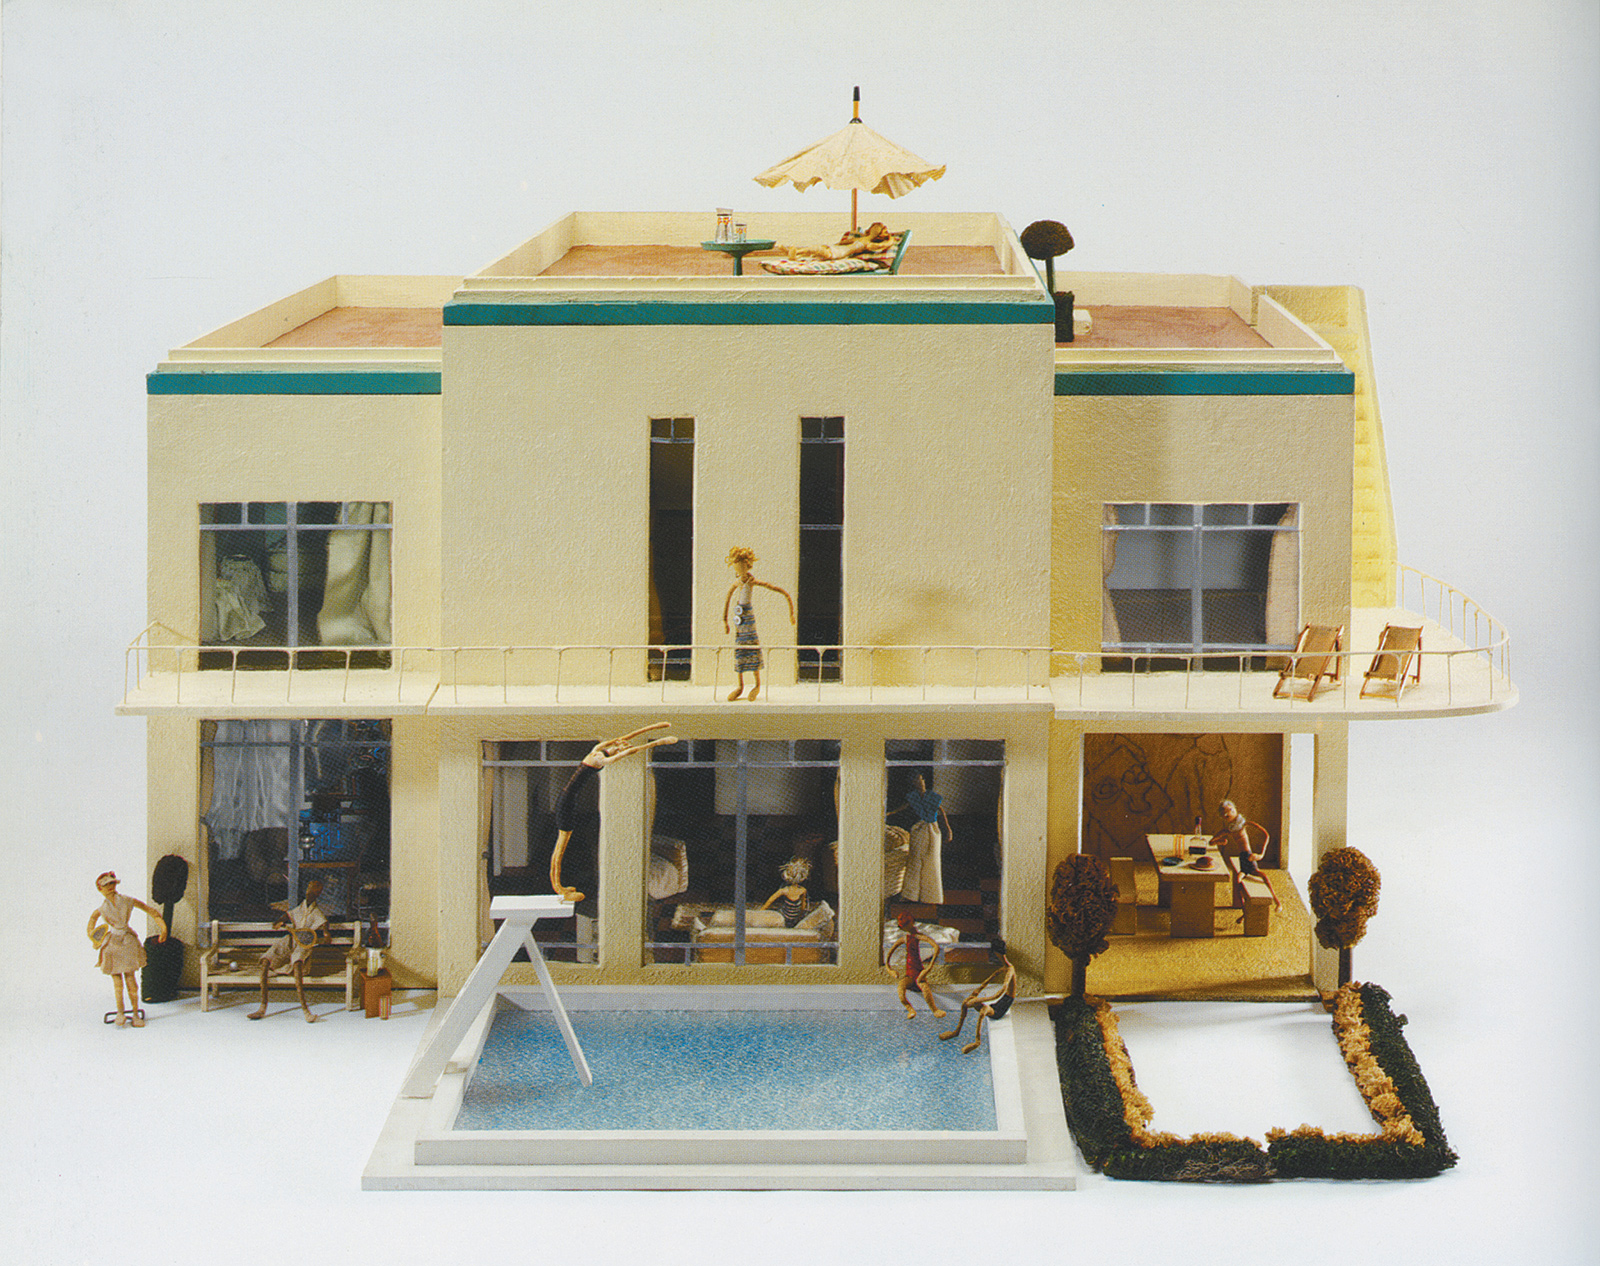 Whiteladies House, designed by Moray Thomas and built by William Purse, 1935; from the 'Small Stories' exhibition. 'With a swimming pool, cocktail bar, and murals by the Futurist painter Claude Flight,' Patricia Storace writes, this dollhouse 'evokes Noël Coward's songs in praise of madcap pranks and improvised parties, and Evelyn Waugh's Bright Young Things.'